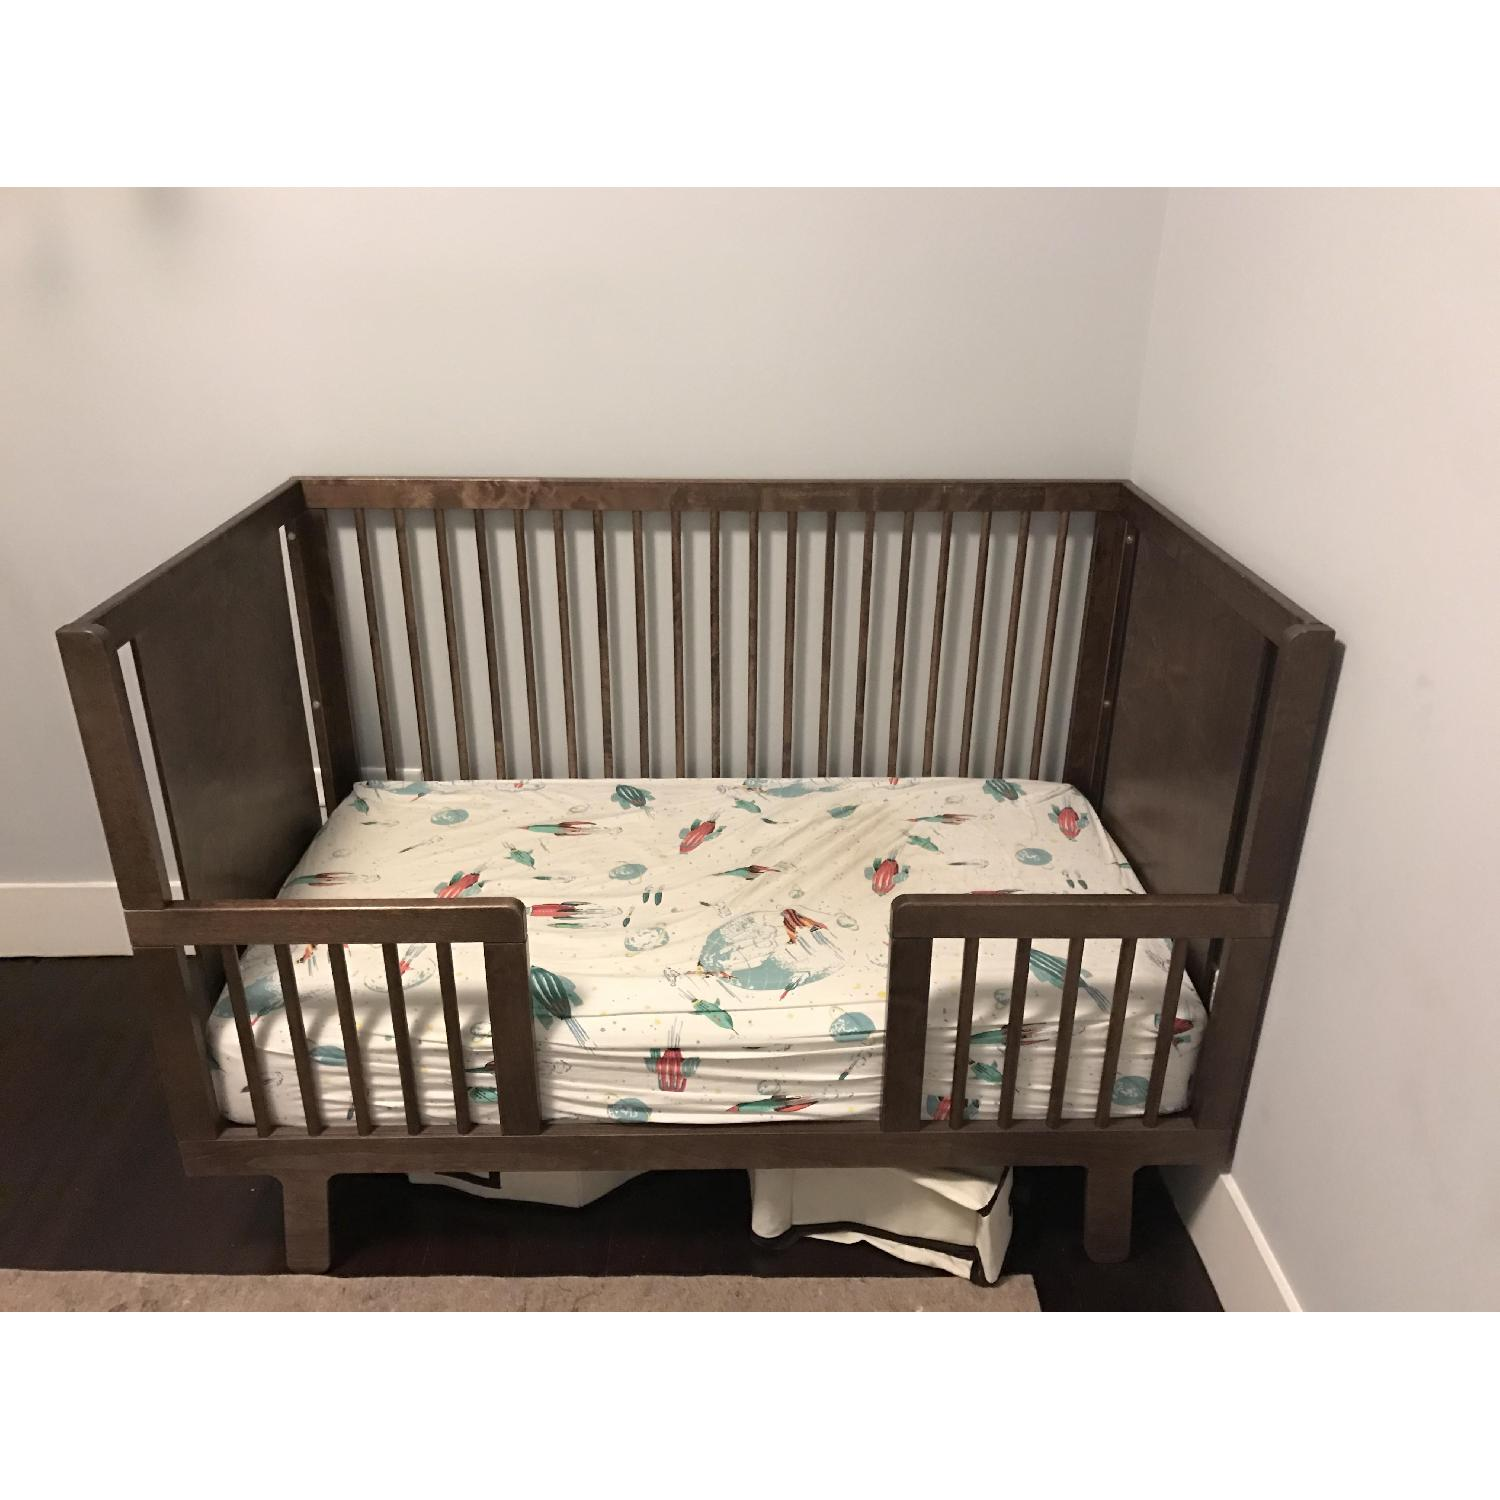 Ouef Sparrow Crib & Toddler Conversion Kit in Walnut - image-4